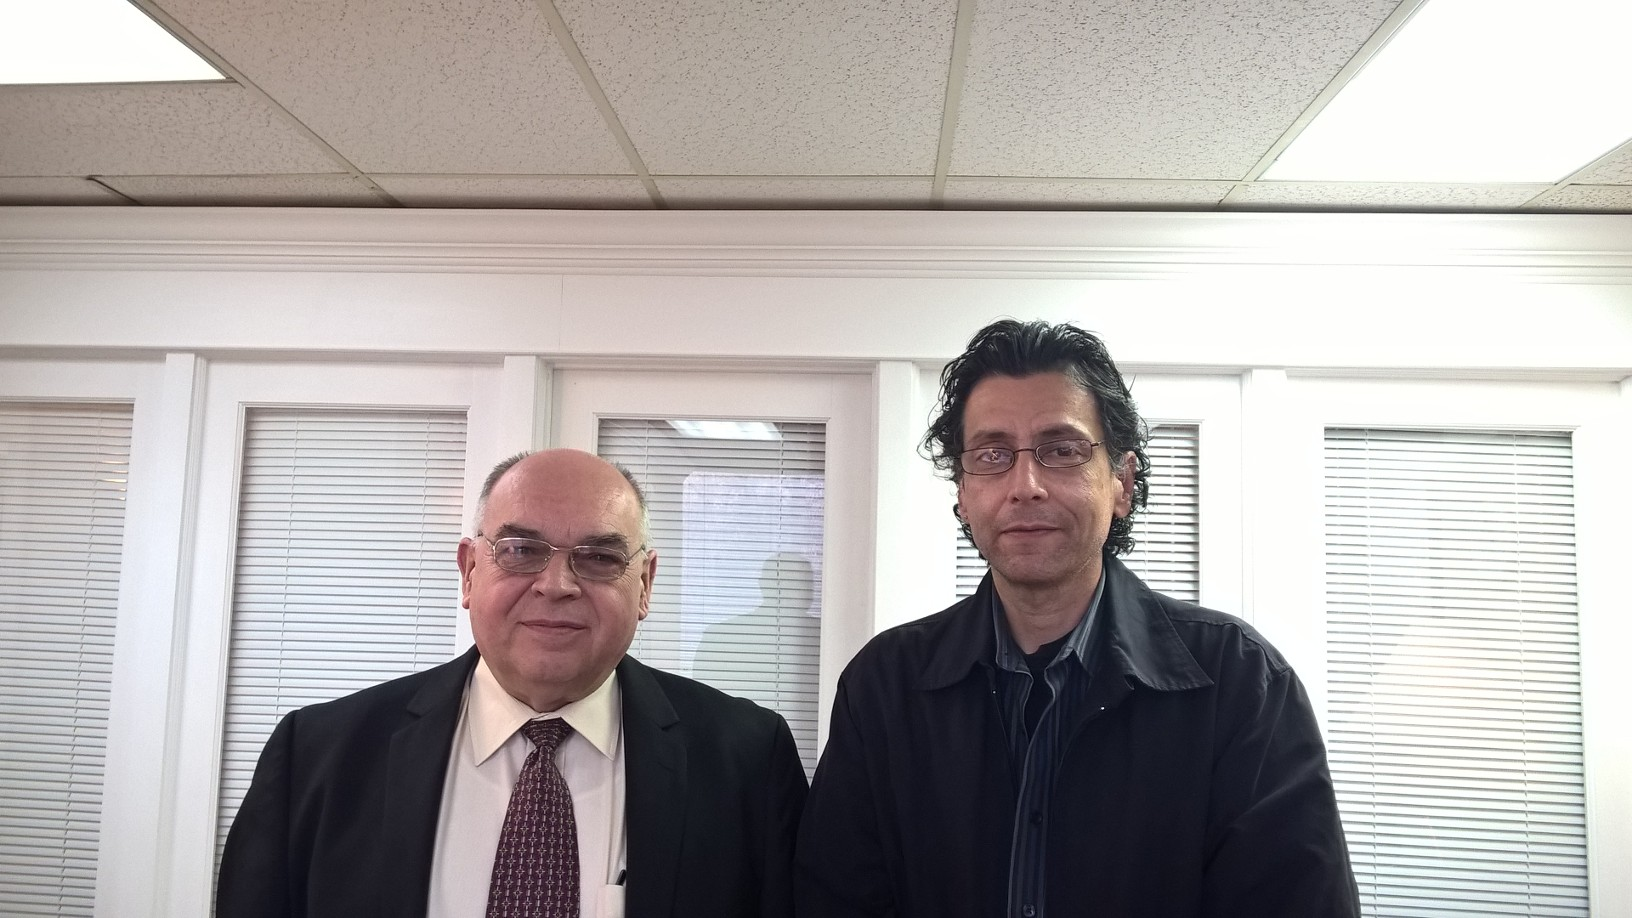 Anthony Ochoa & Dr. Pawel Jastreboff - Baltimore, MD - 2015-12-13.jpg